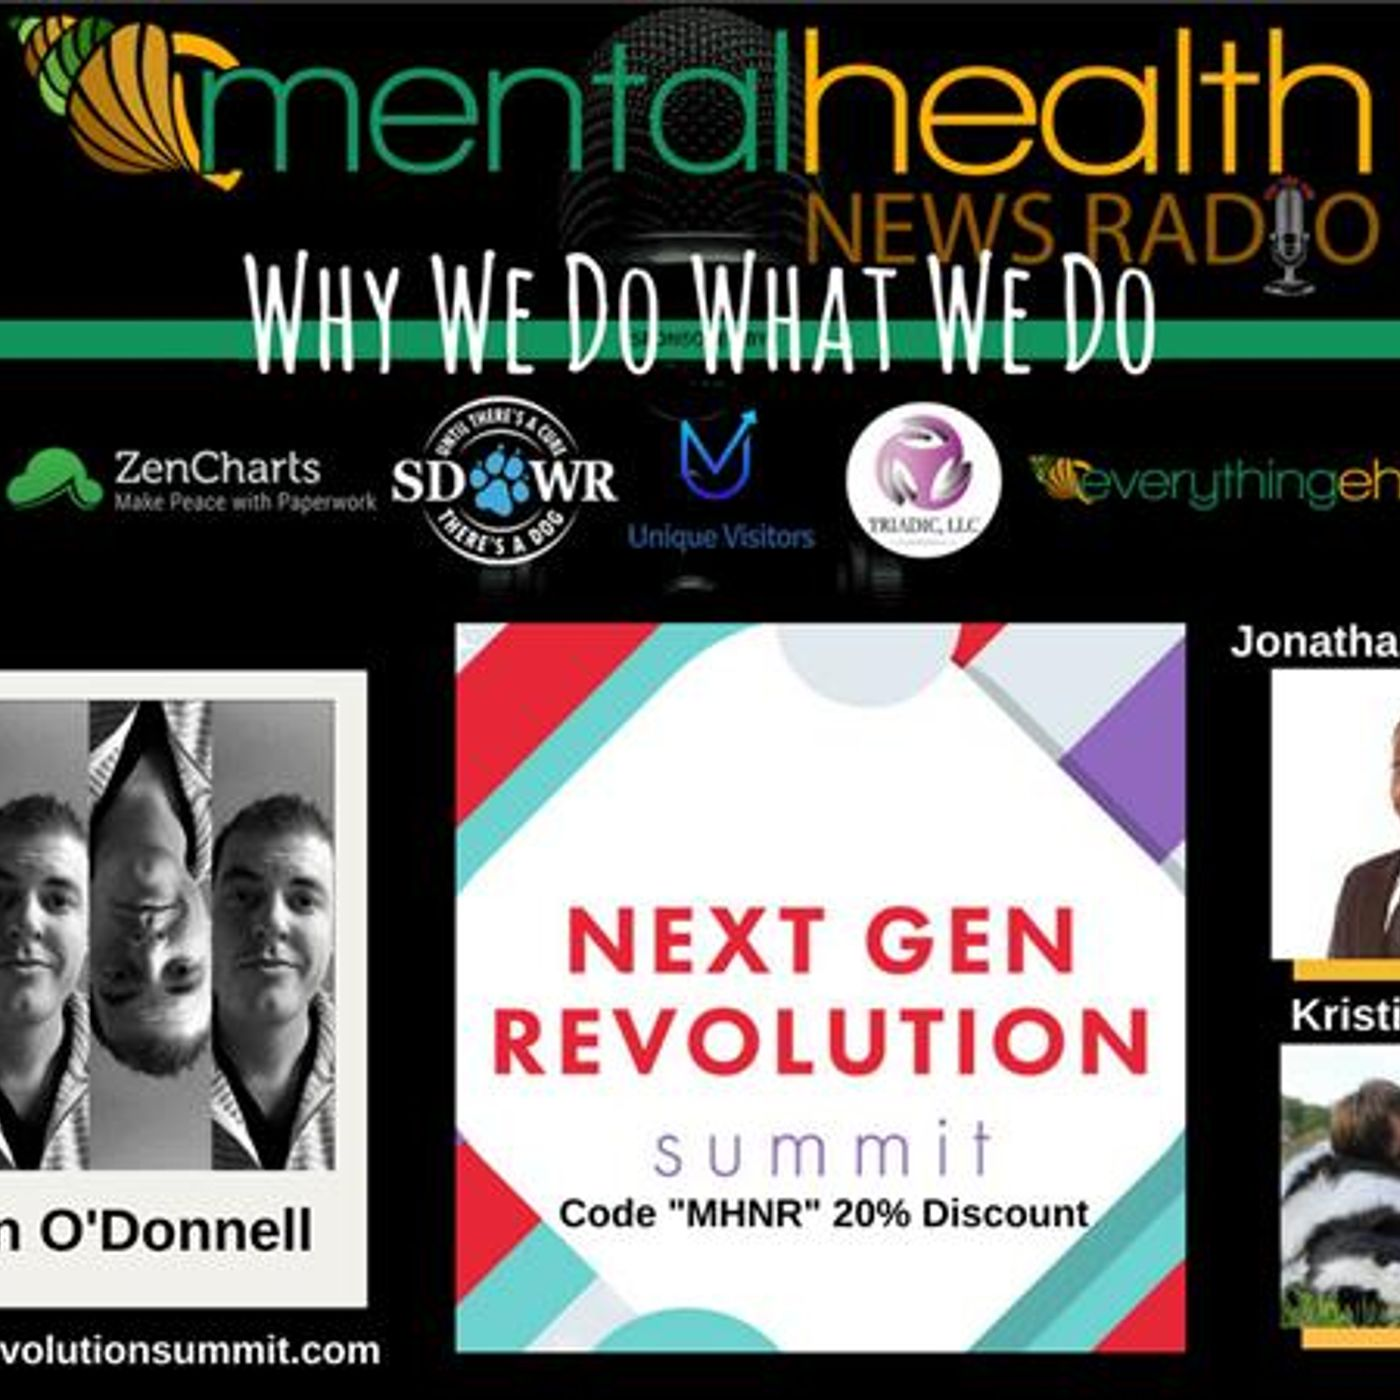 Mental Health News Radio - Why We Do What We Do: Ryan O'Donnell at Next Gen Revolution Summit